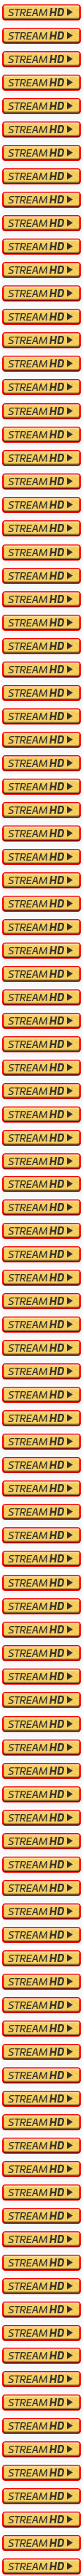 Livestreams-in-HD